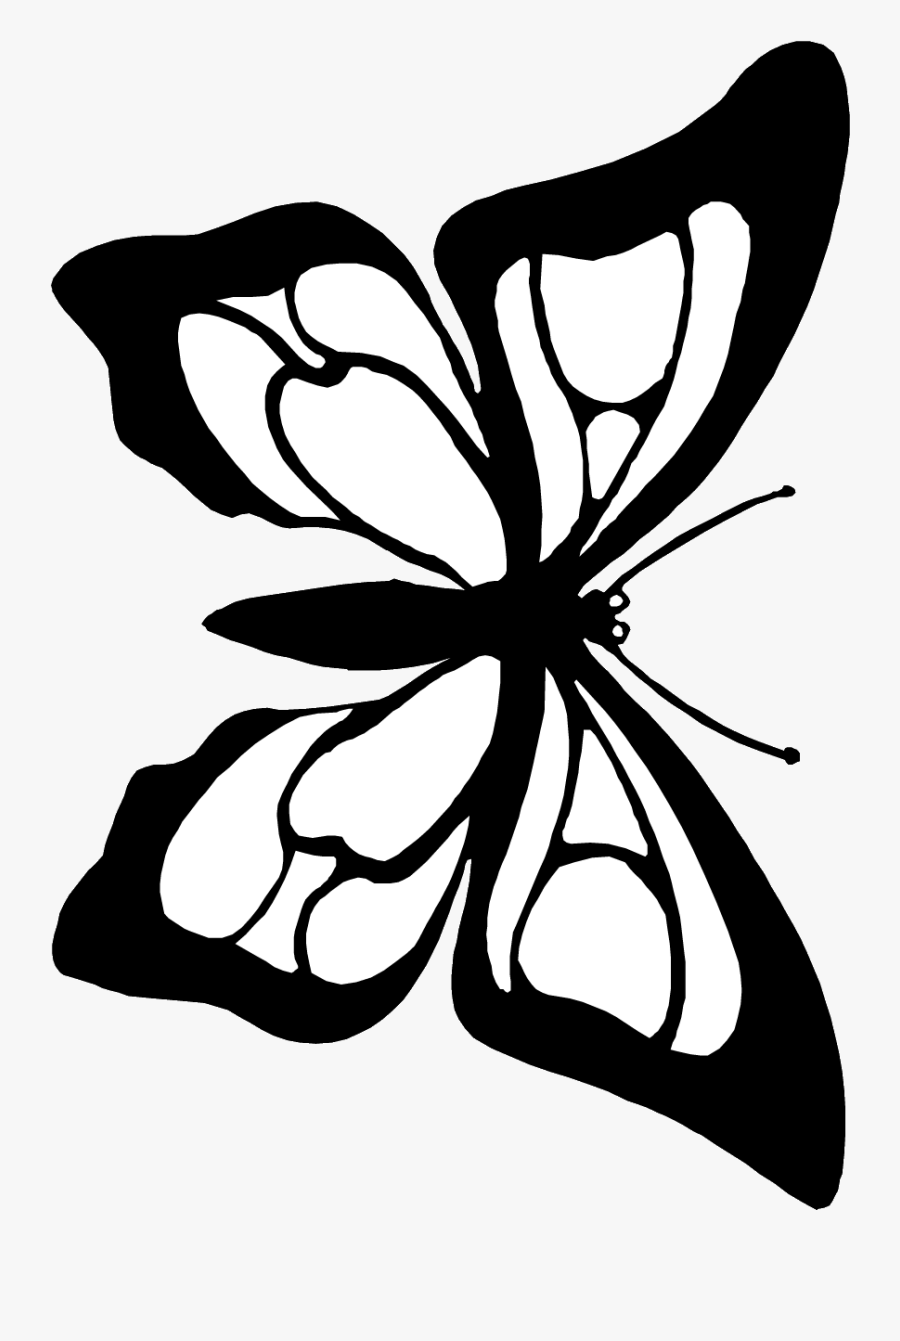 Butterfly Cutout Coloring Page - Butterfly Black White To Cut Out, Transparent Clipart